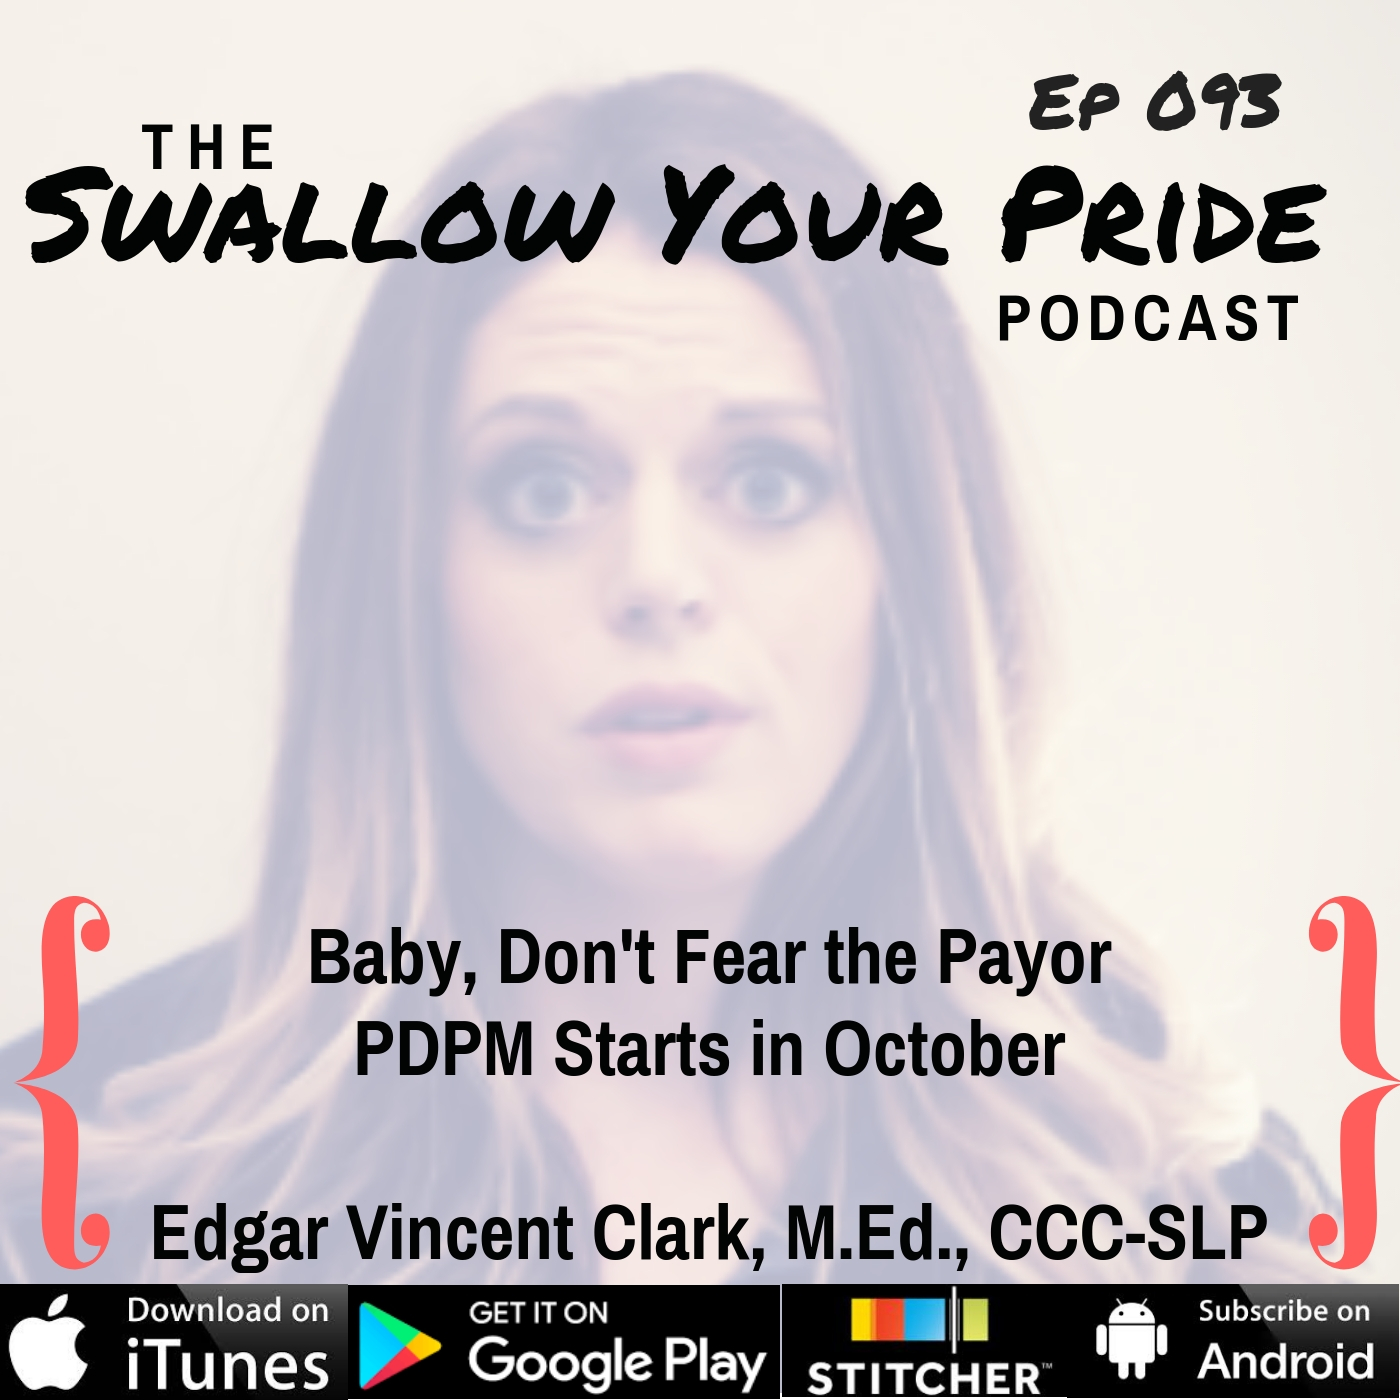 093 – Edgar Vincent Clark M. Ed. CCC-SLP – Baby, Don't Fear the Payor: PDPM Starts in October